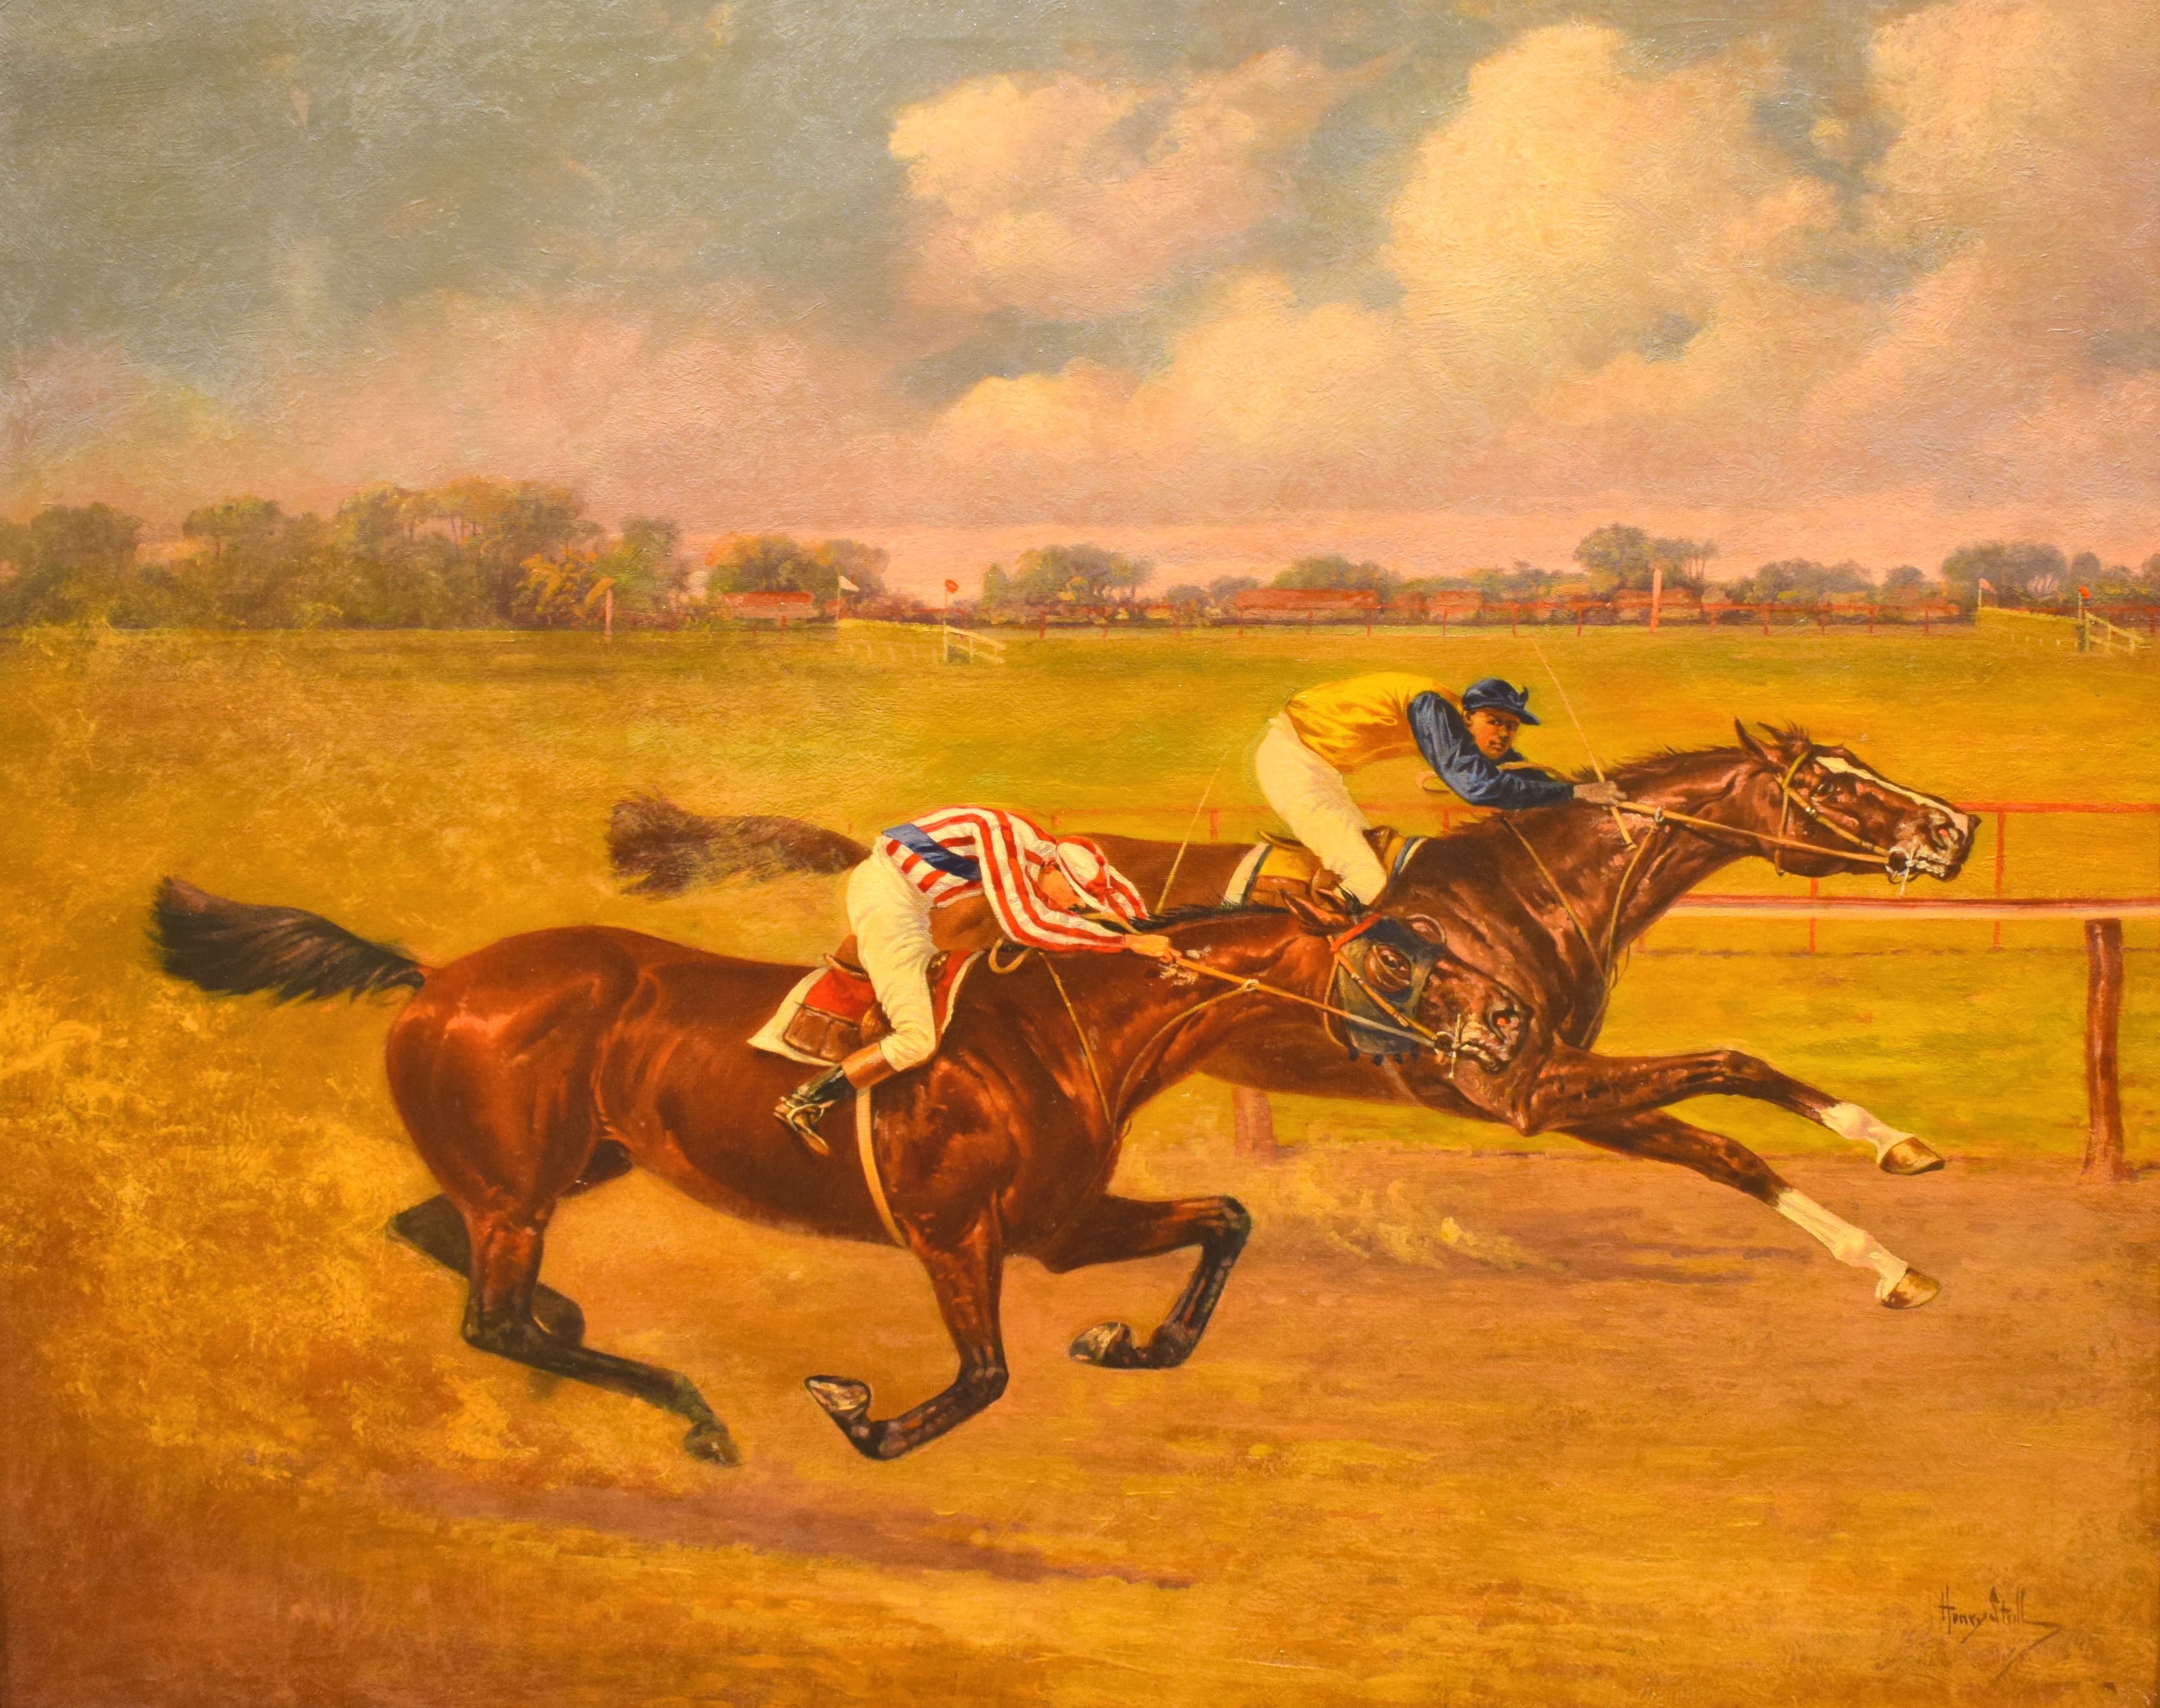 """Salvator, on inside, vs. Tenny in """"The Great $10,000 Match Race"""" painting by Henry Stull, 1890 (Museum Collection)"""